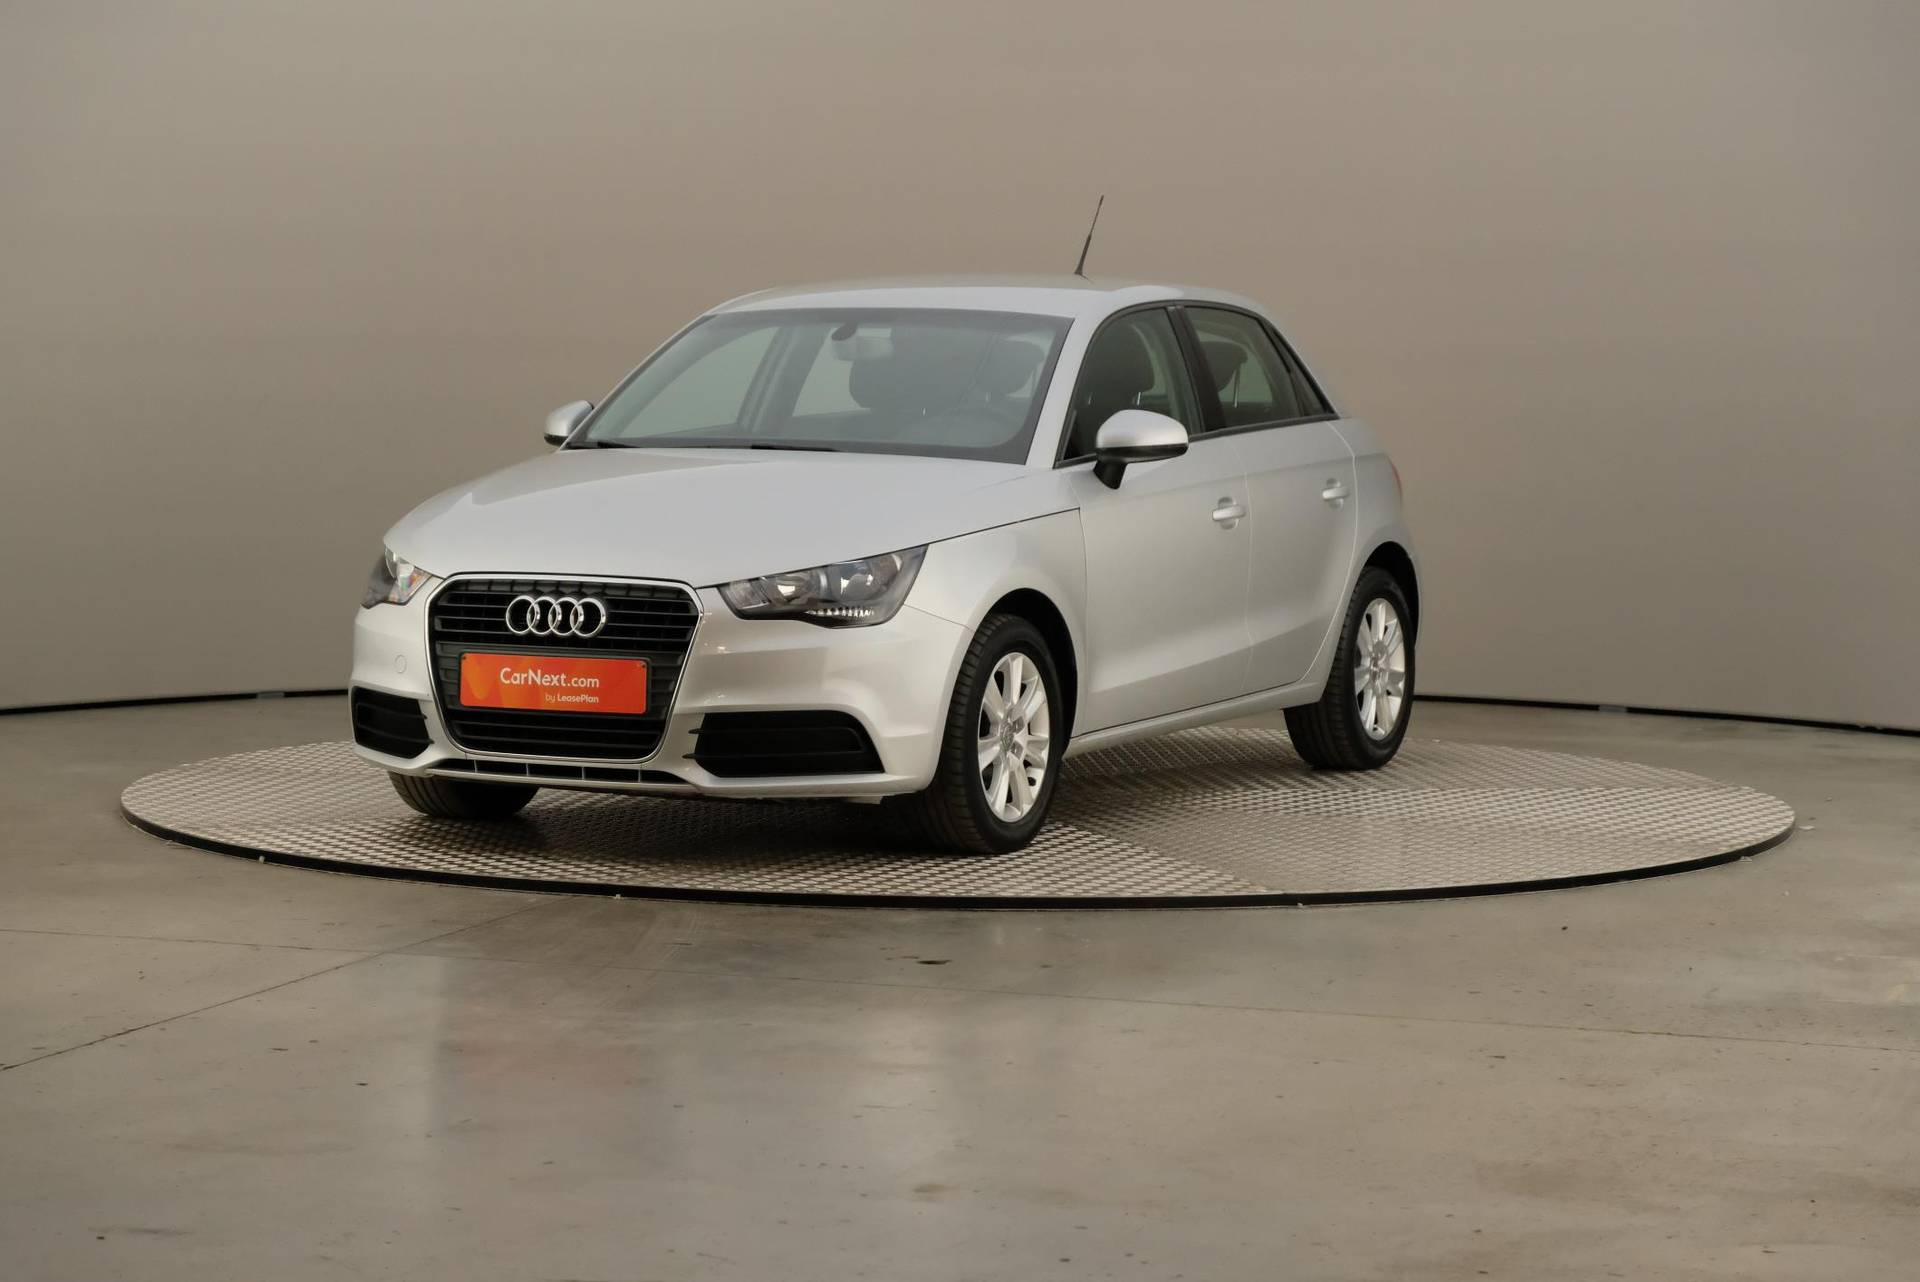 Audi A1 1.6 TDI Sportback, Attraction S&S PDC BT, 360-image34